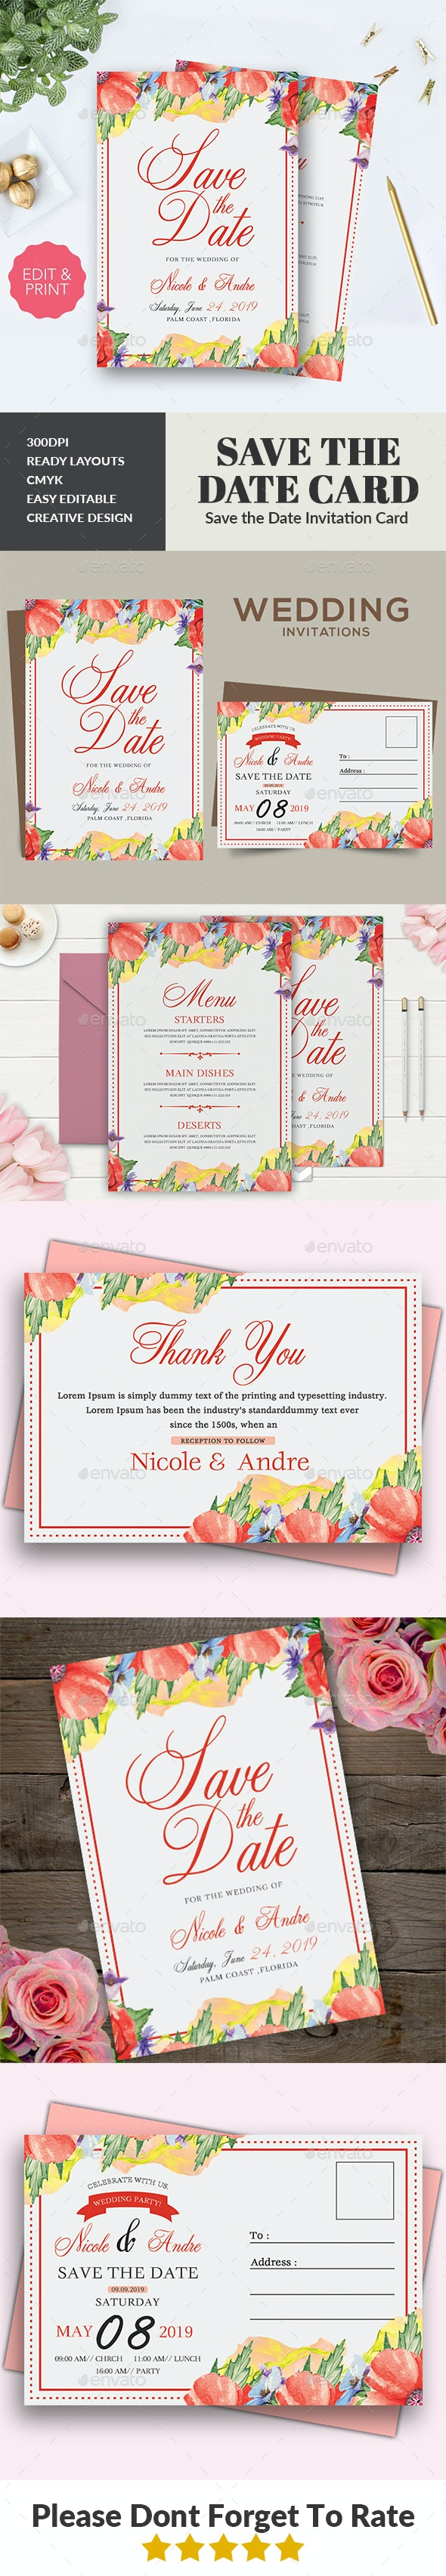 Wedding Invitation - Weddings Cards & Invites